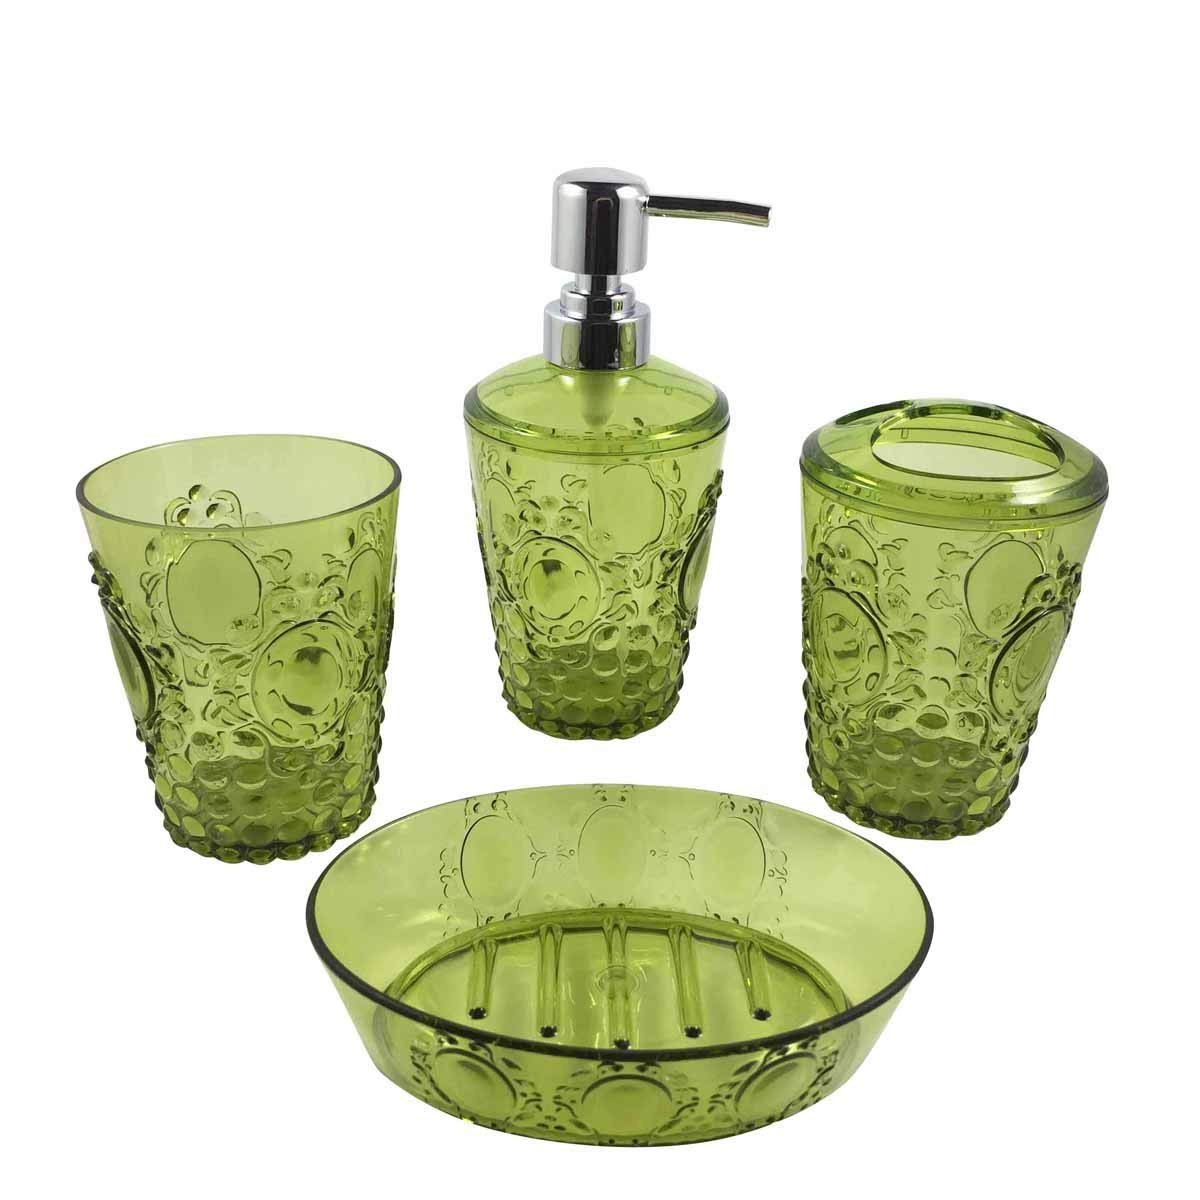 Bathroom Dispenser Set Hampton Acrylic Bathroom Accessories Set Of 4 Piece Features Soap Dispenser Pump Toothbrush Holder Tumbler Soap Dish Green